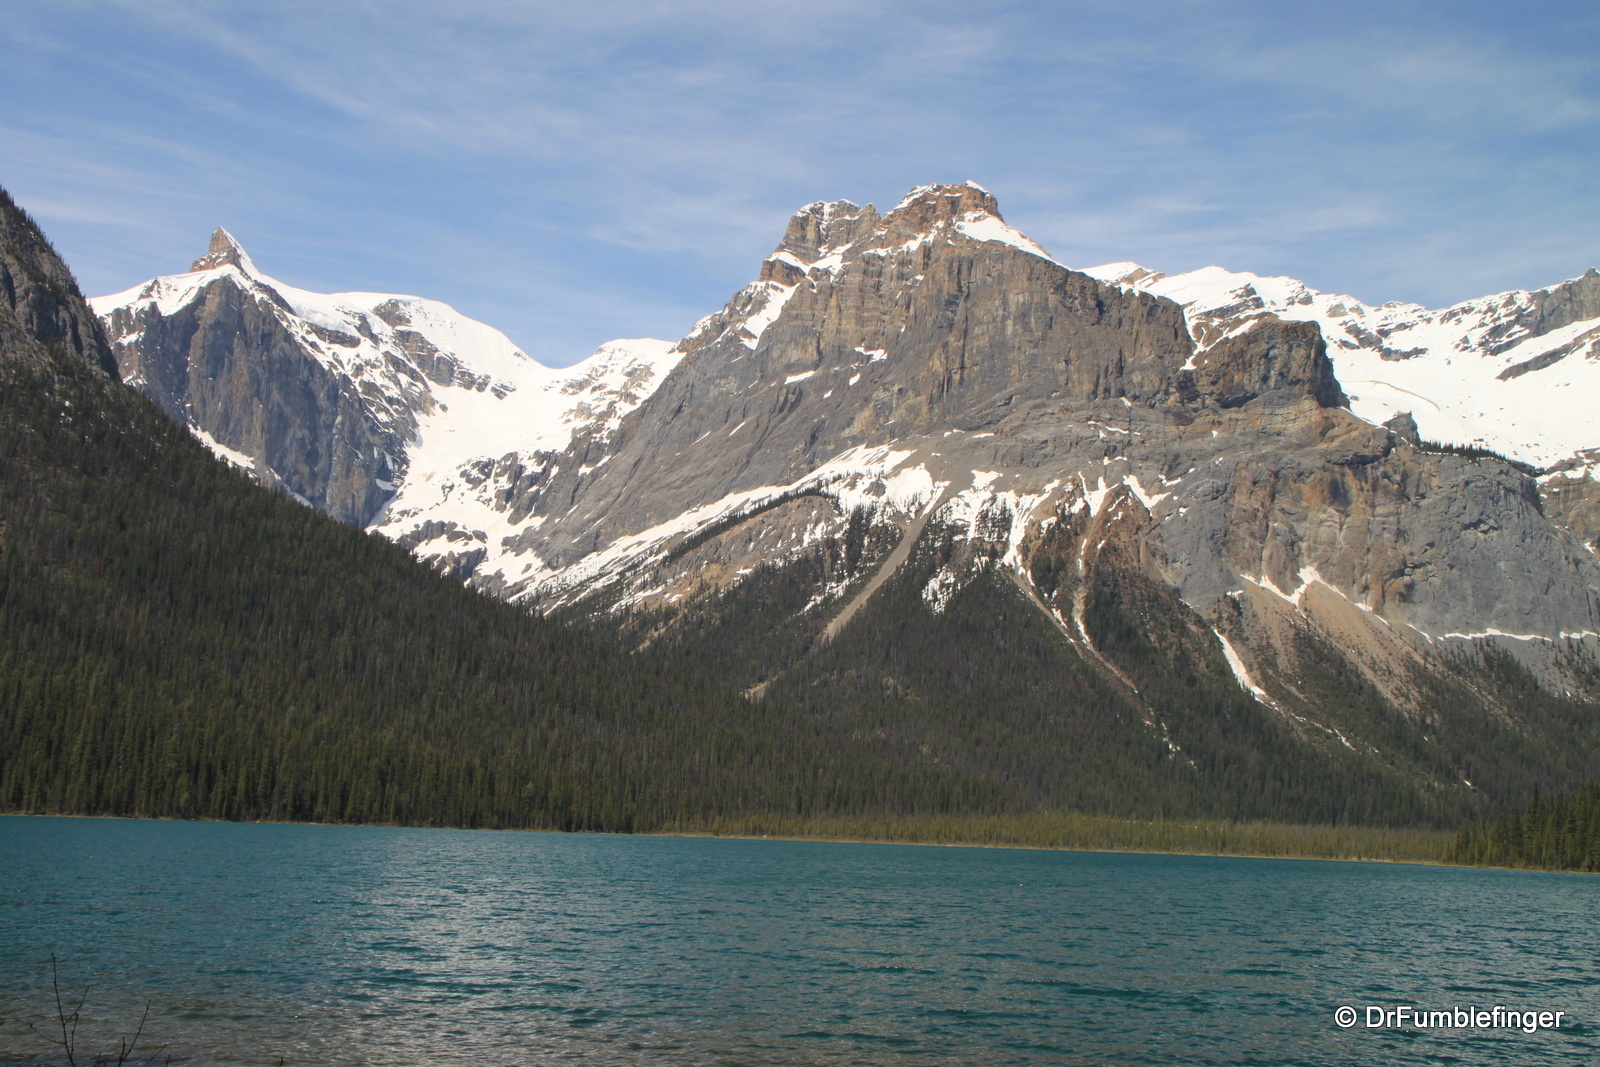 Emerald Lake, view of North Shore